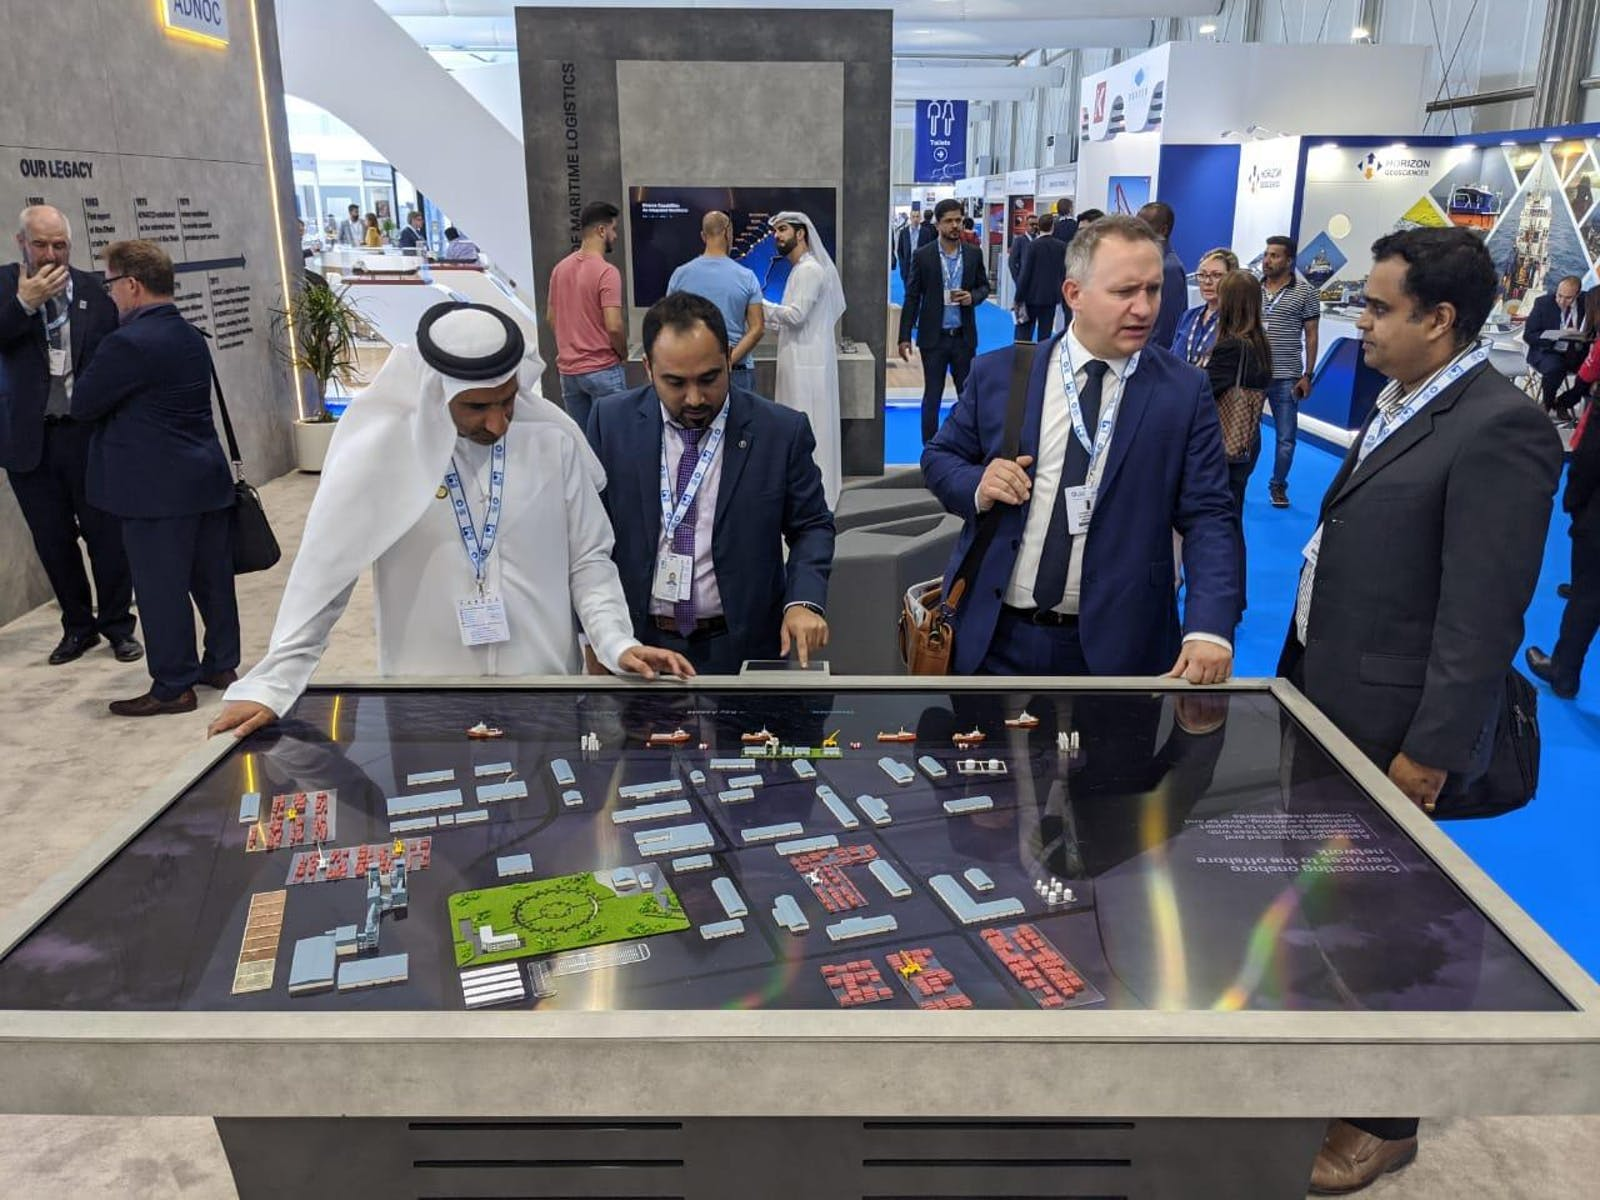 Adipec 2019 booths for Exxon, Adnoc and Emerson